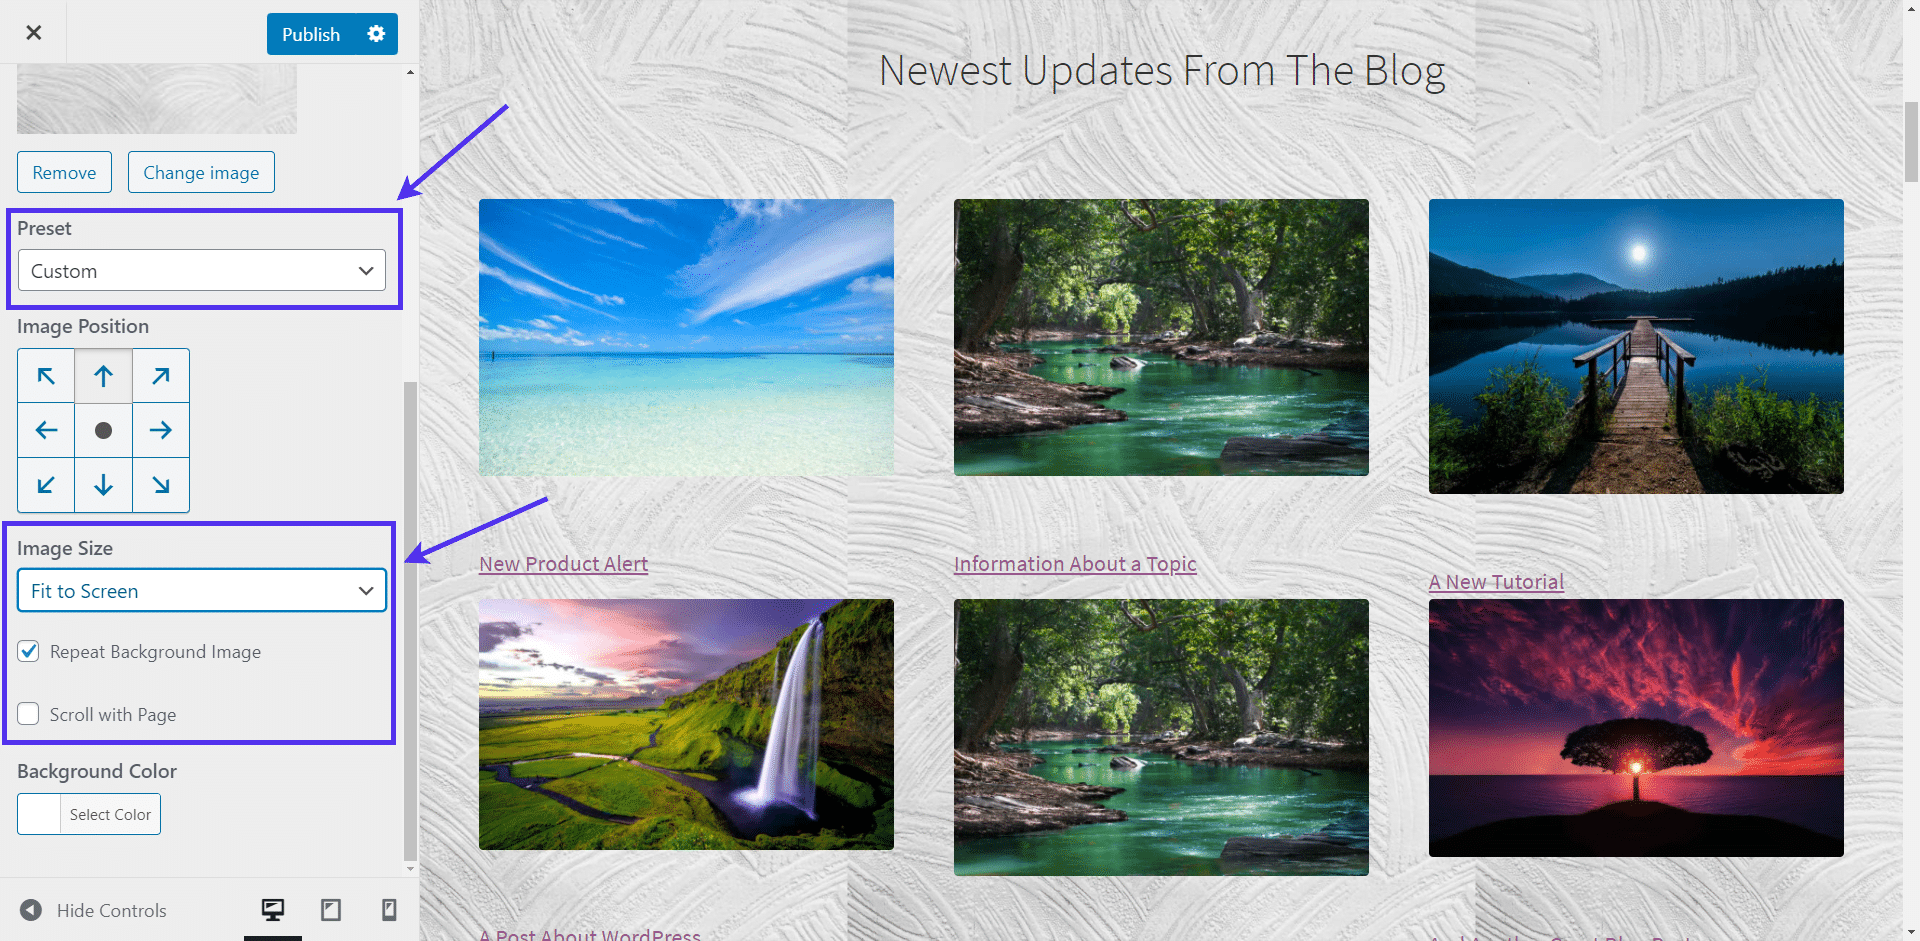 Presets and Image Sizes for background images